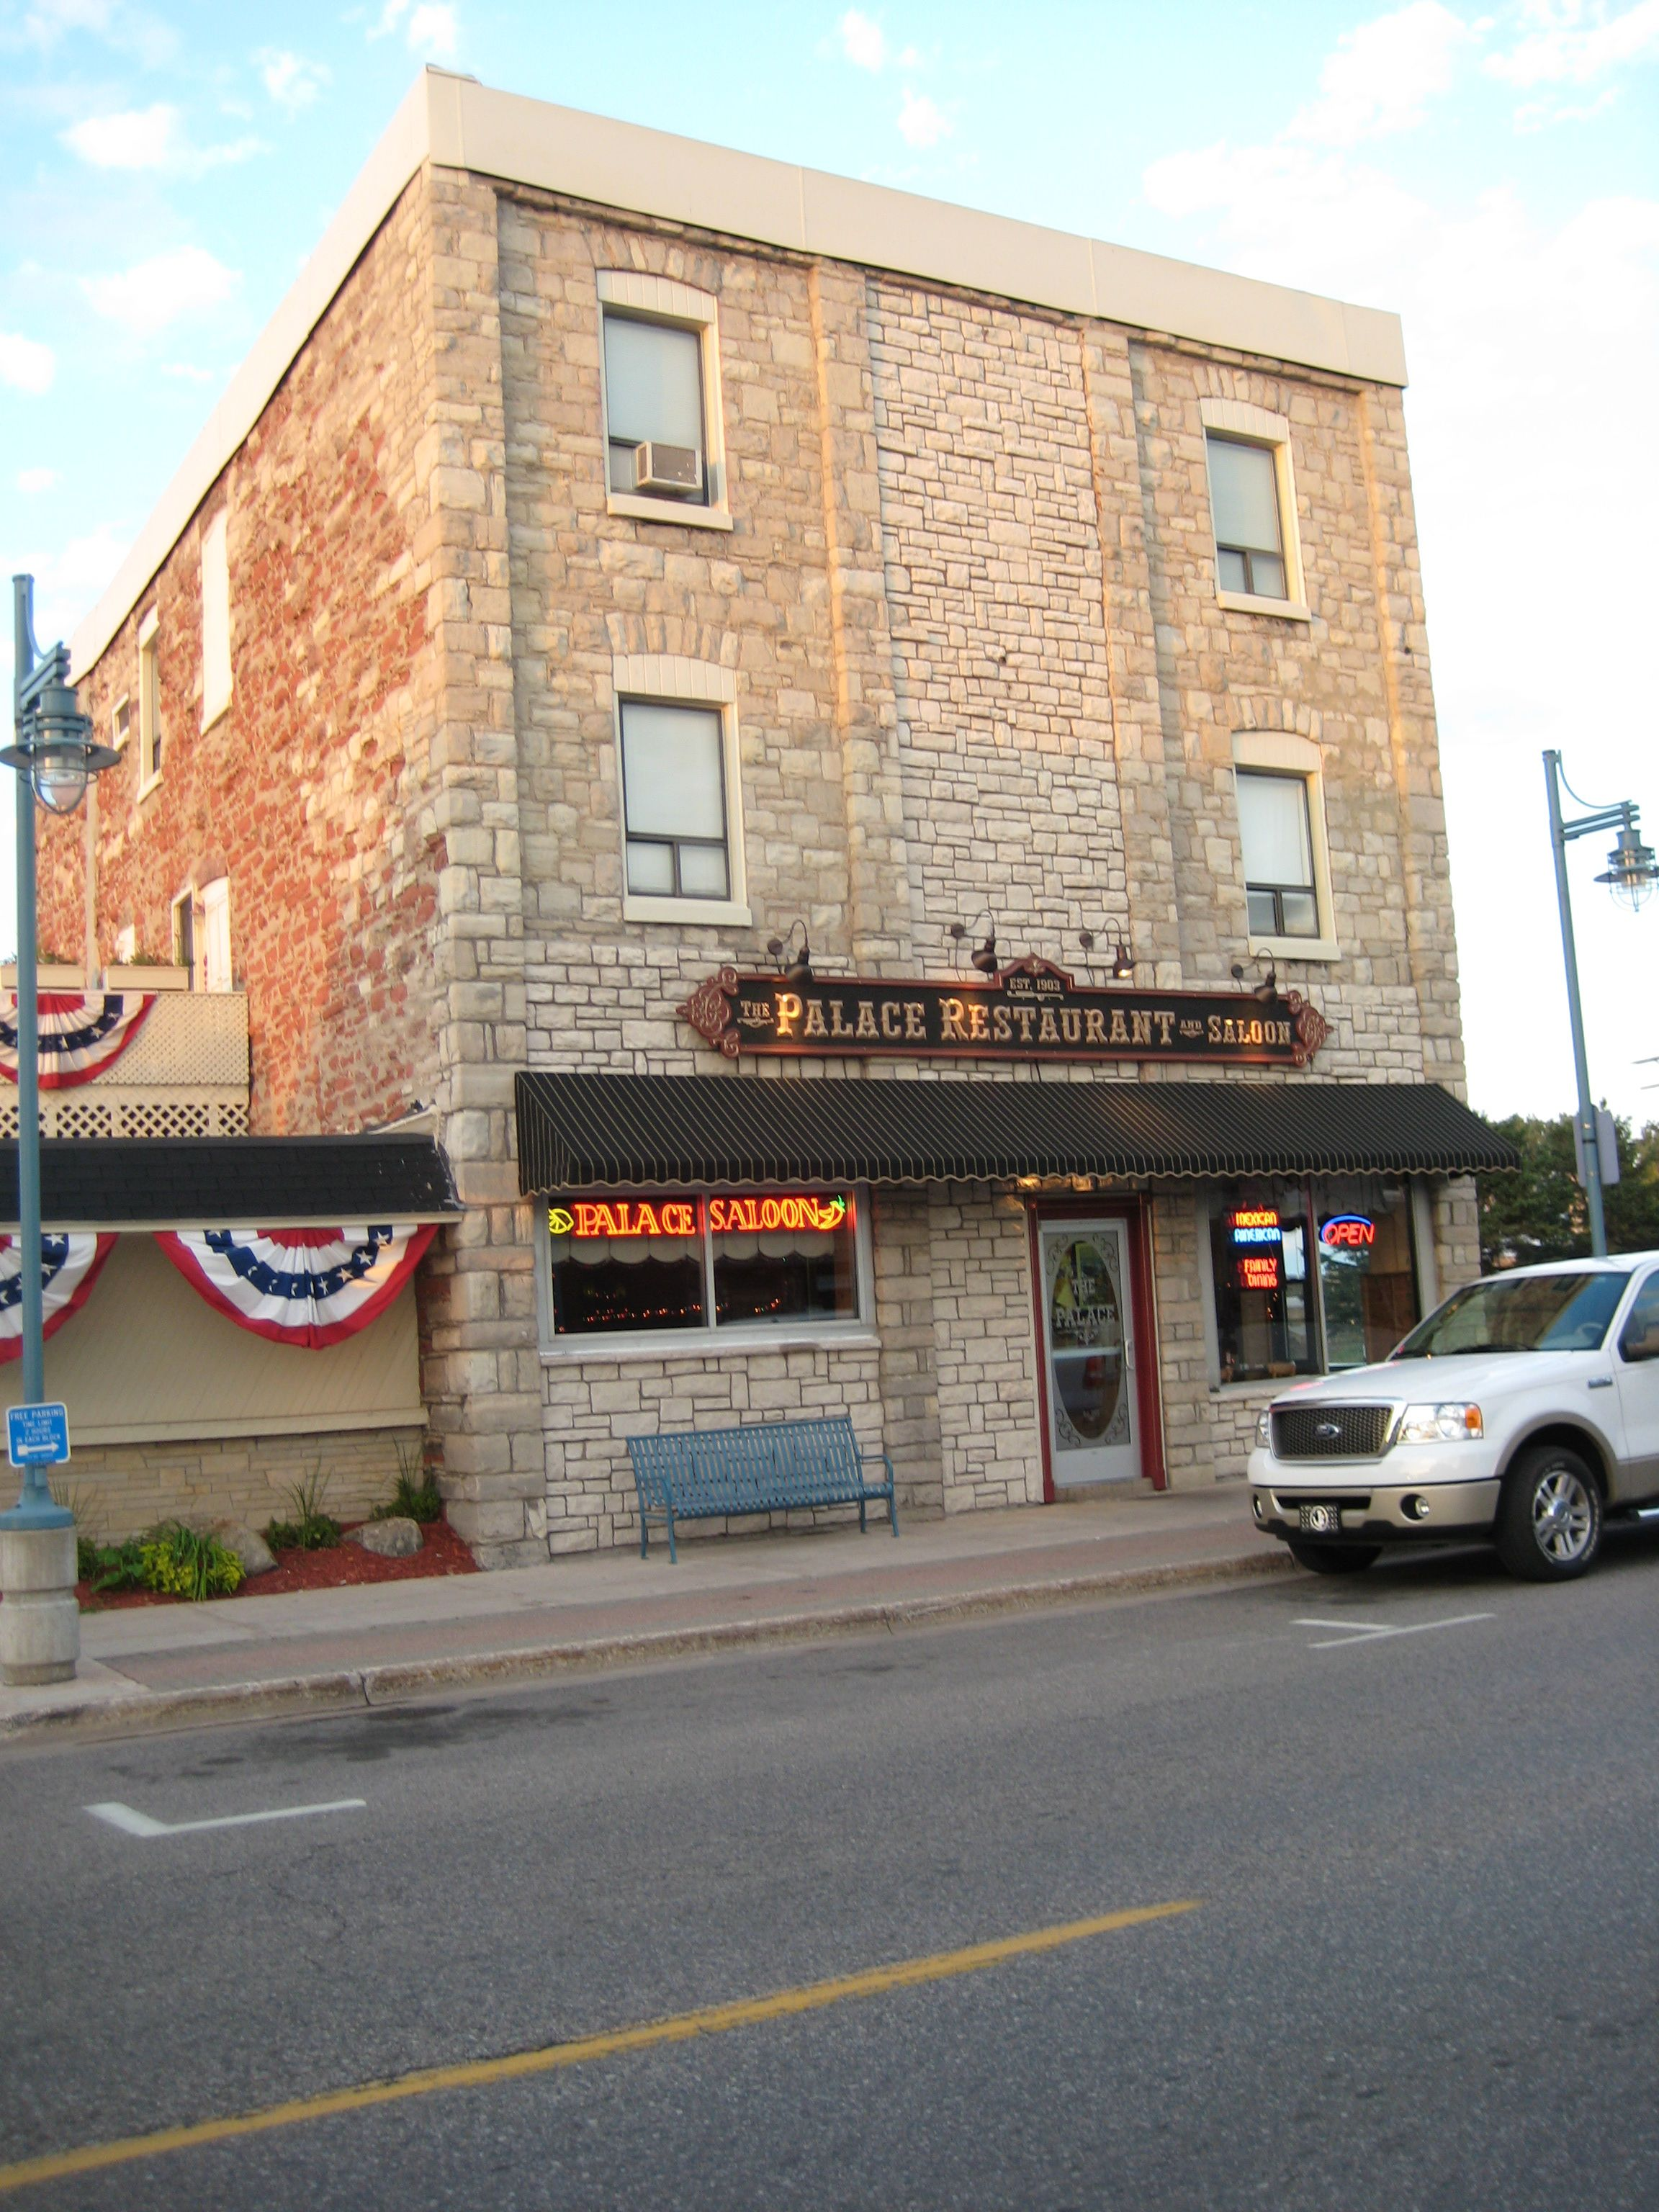 The palace restaurant and saloon is located downtown in sault ste the palace restaurant and saloon is located downtown in sault ste marie mi famous for their chili con queso and giant margarita menu m4hsunfo